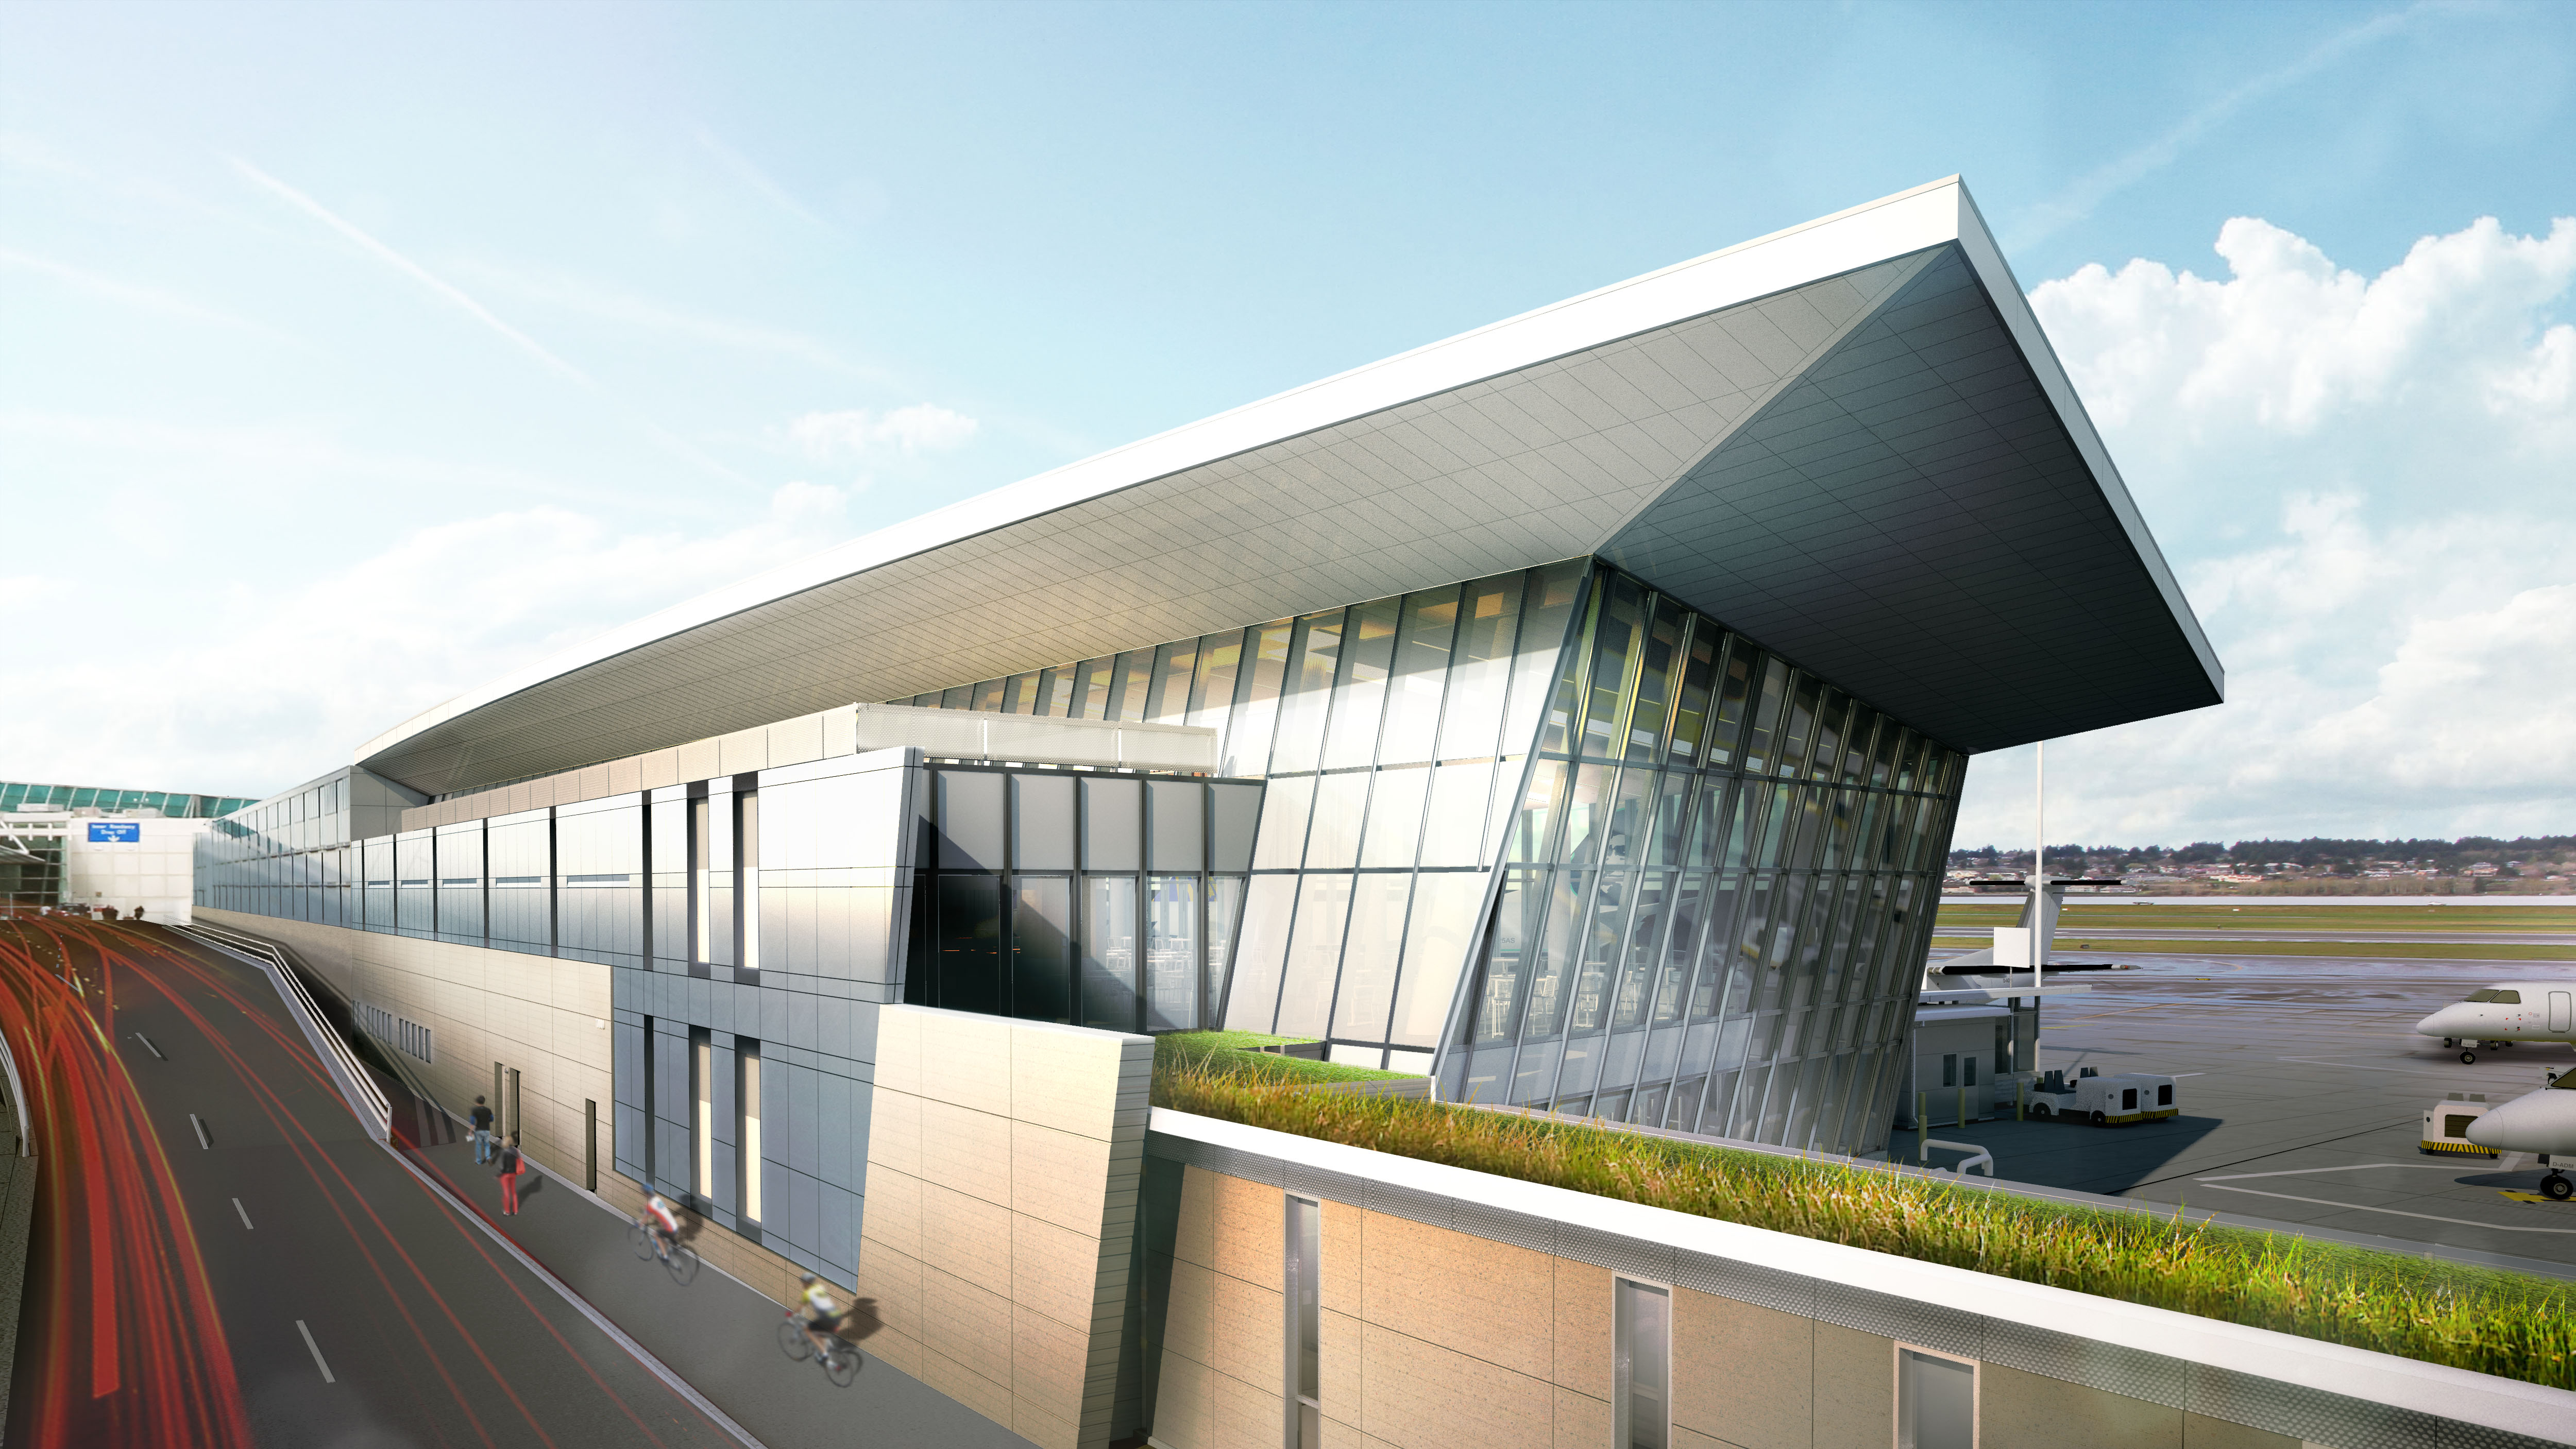 Fentress and Hennebery Eddy Architects Work as One Team to Improve Passenger Experience at the Portland International Airport